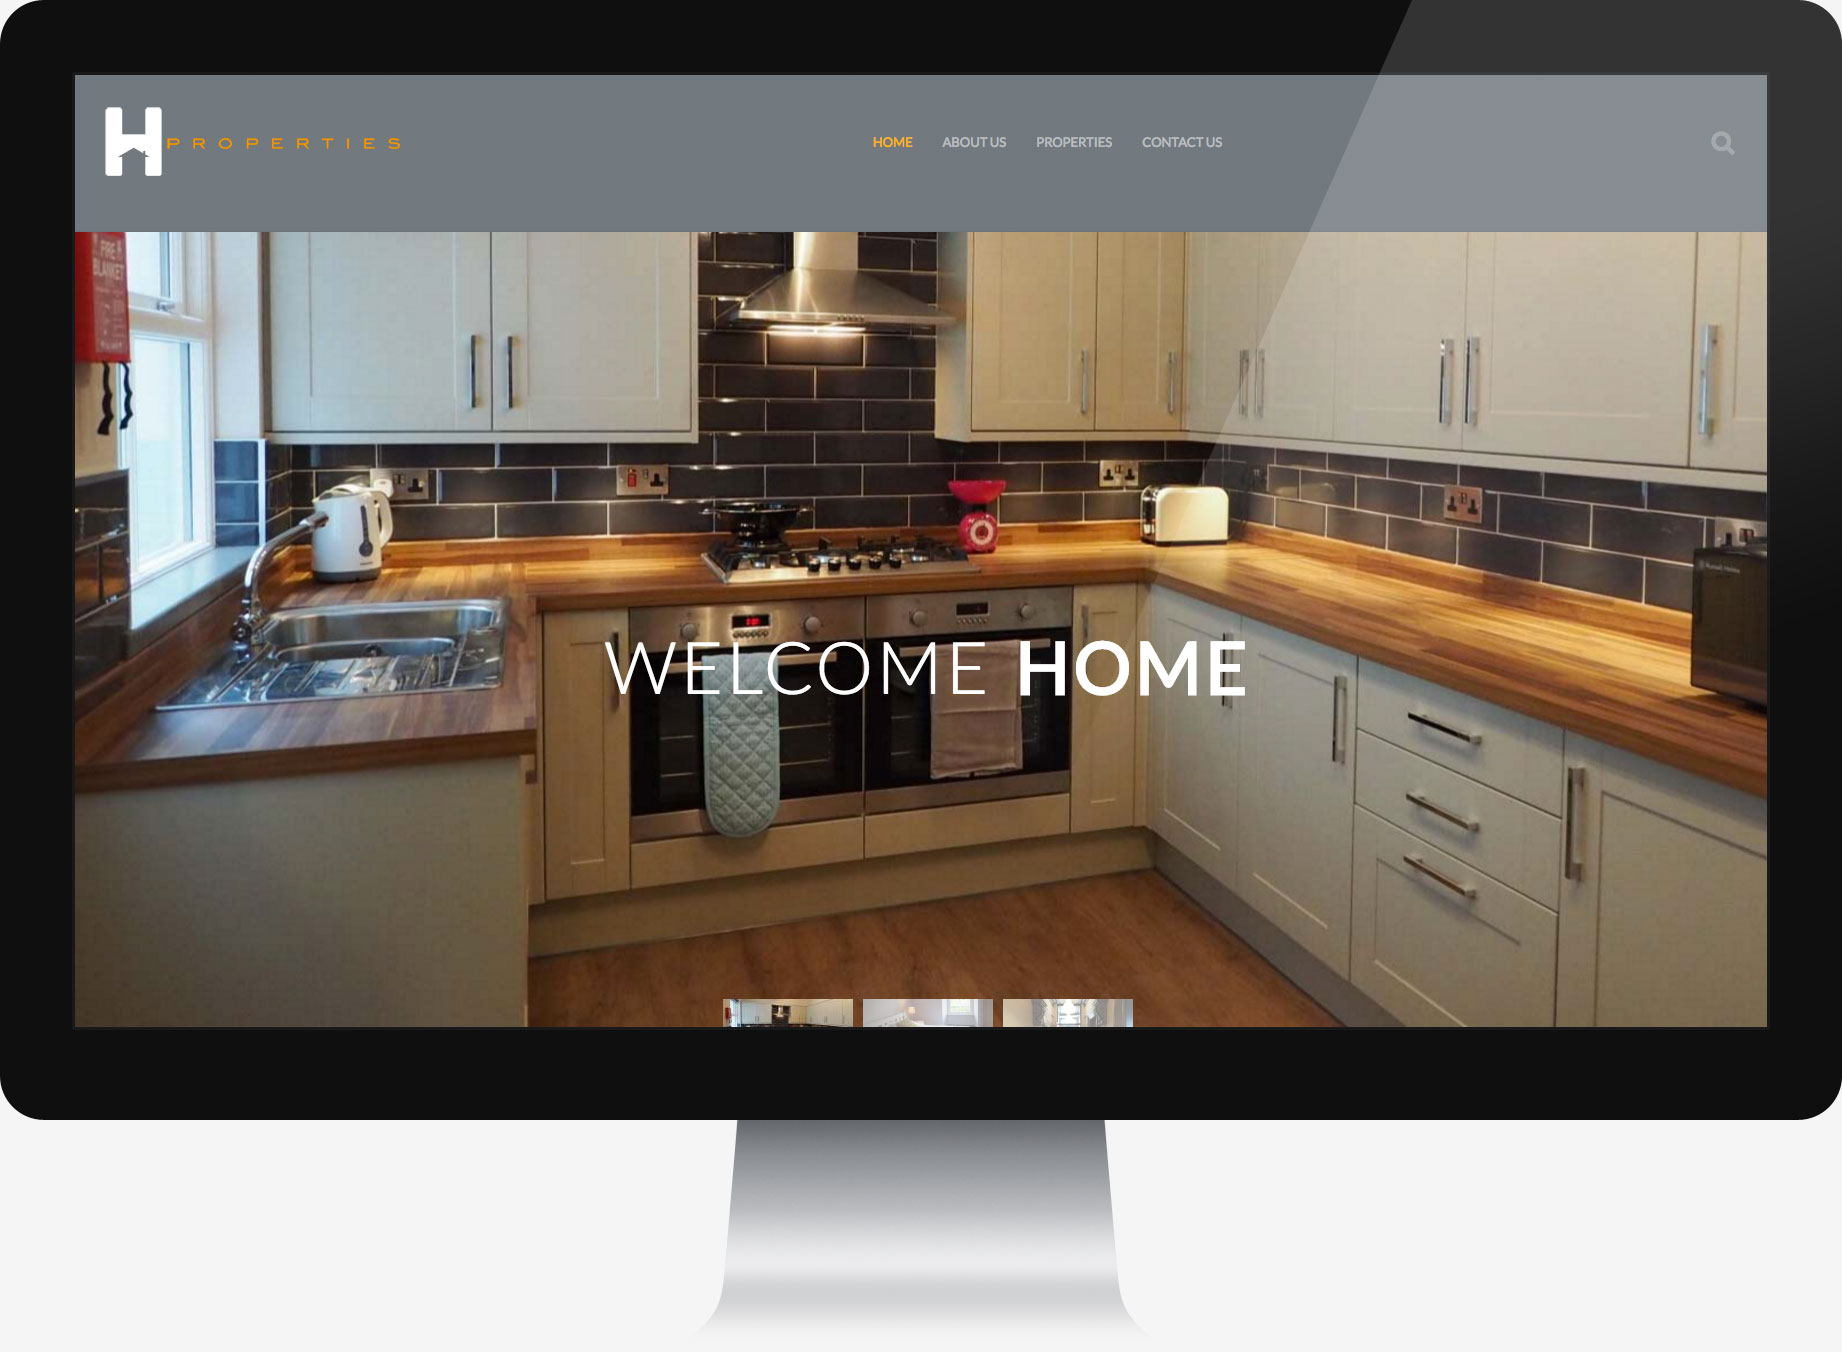 Property company website homepage